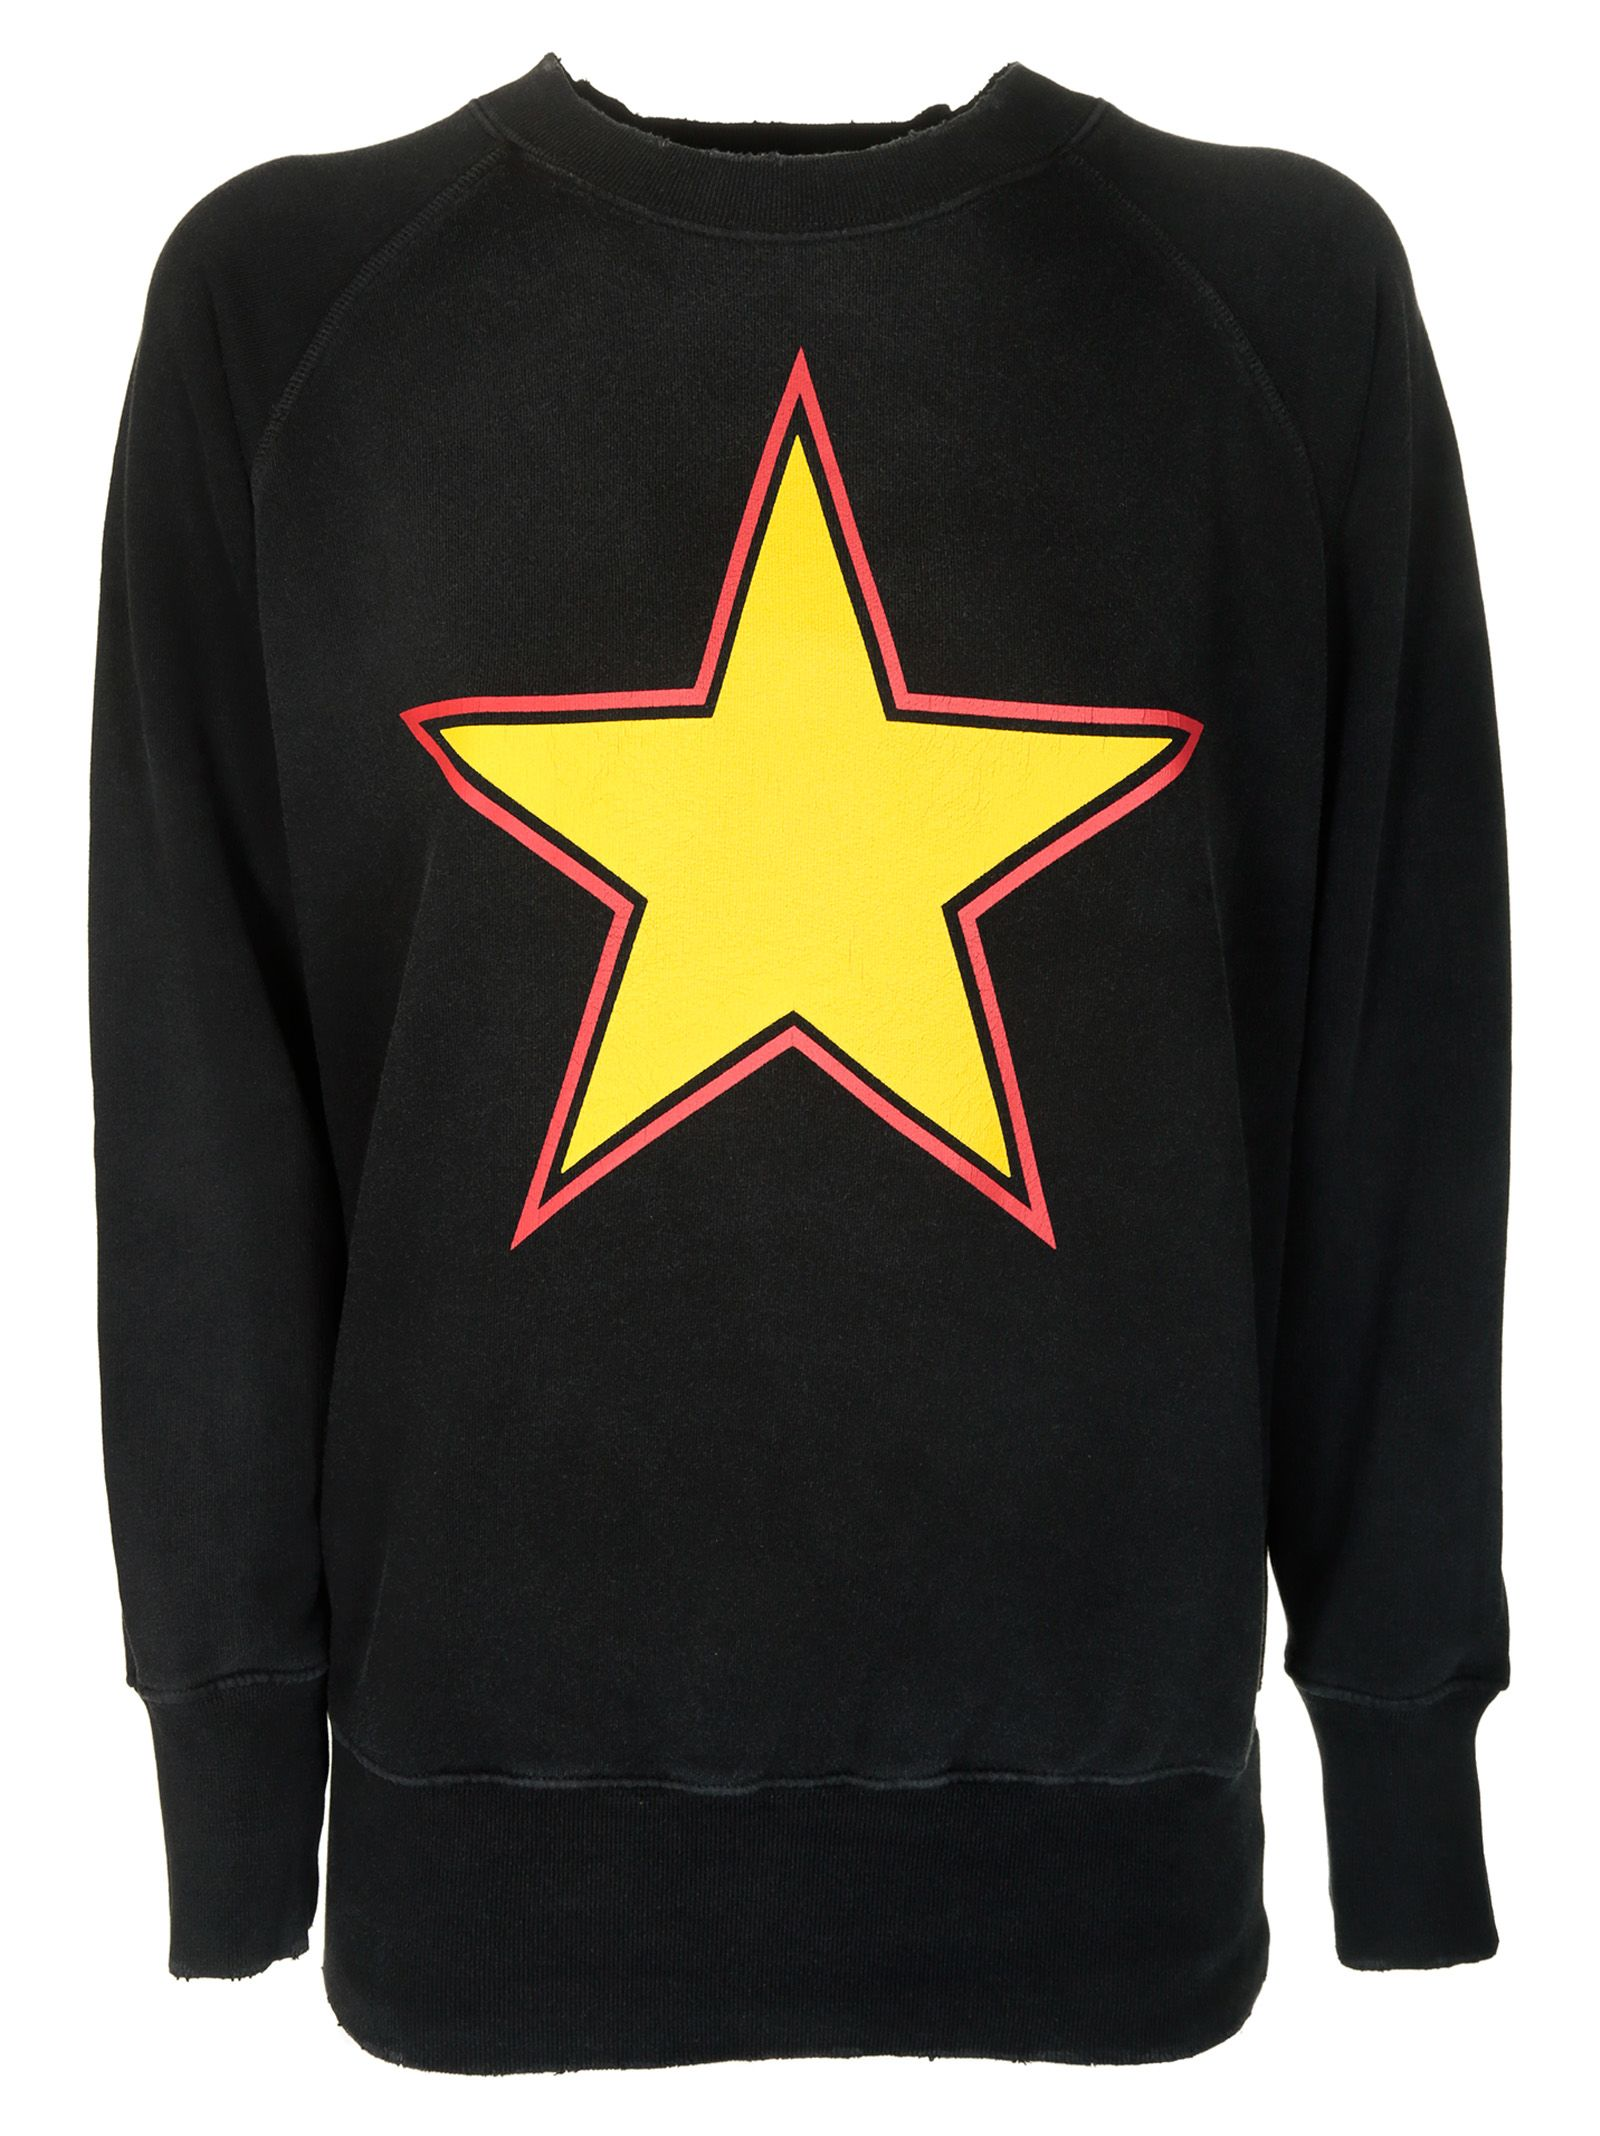 GIVENCHY | Givenchy Star Print Sweatshirt | Clouty